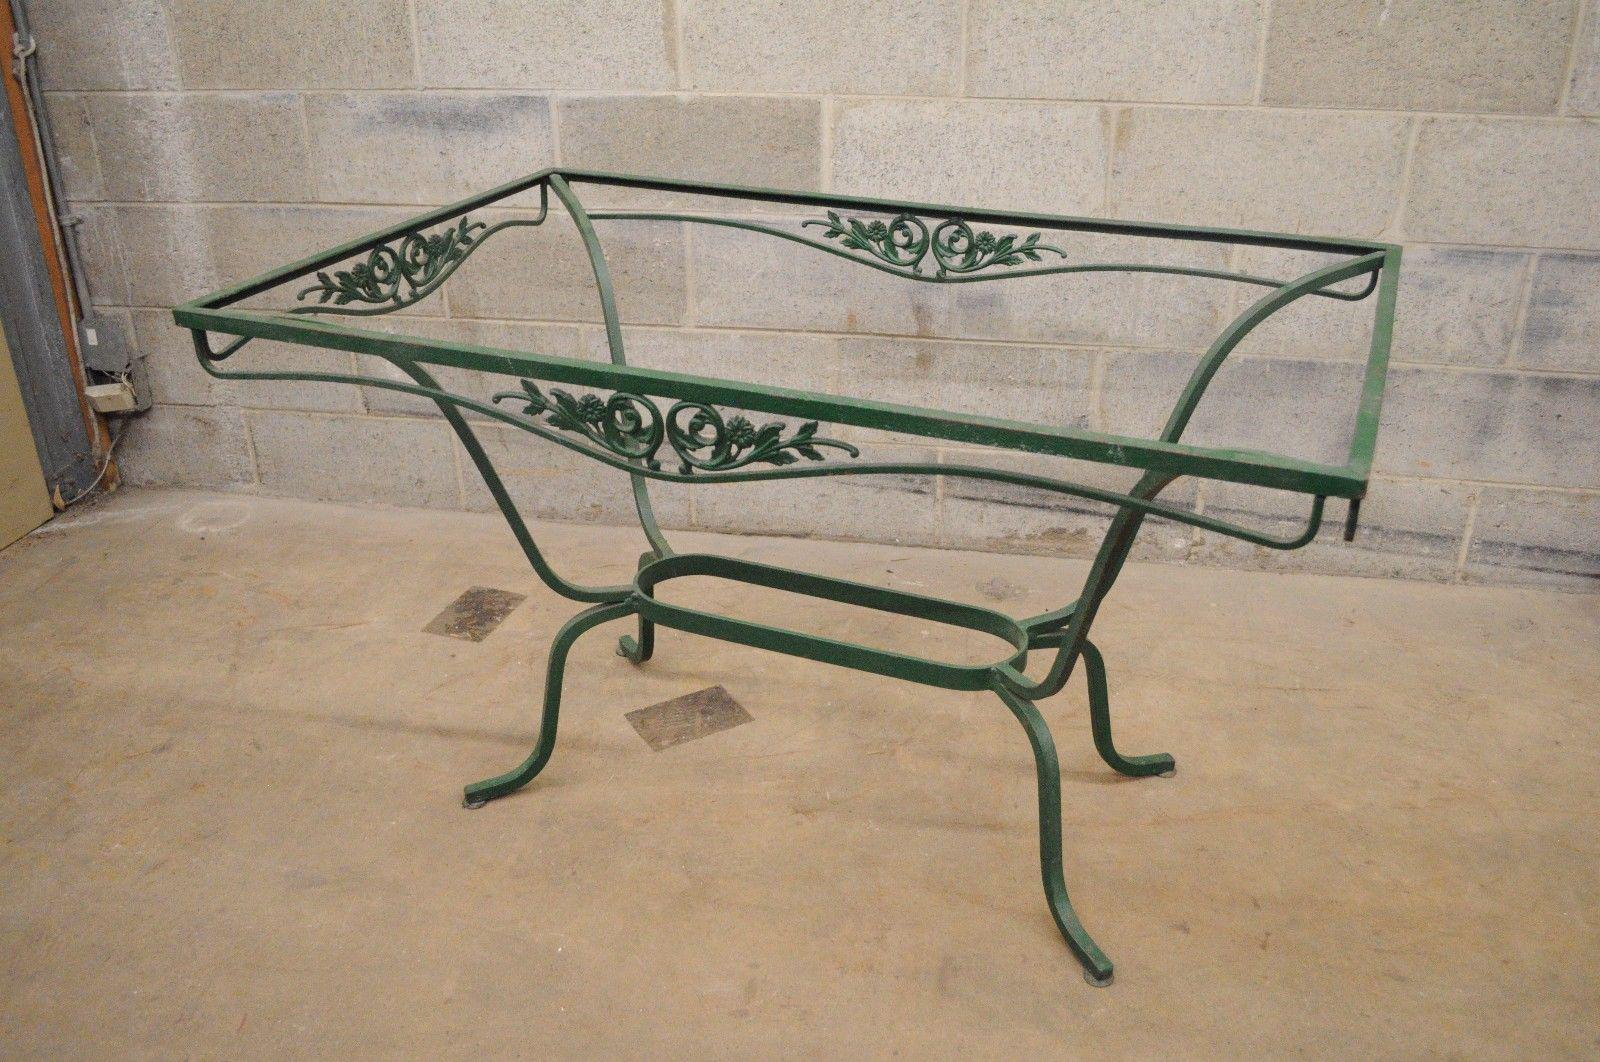 Vintage Salterini Wrought Iron Patio Dining Set Table 4 Chairs Garden  Furniture For Sale   Image